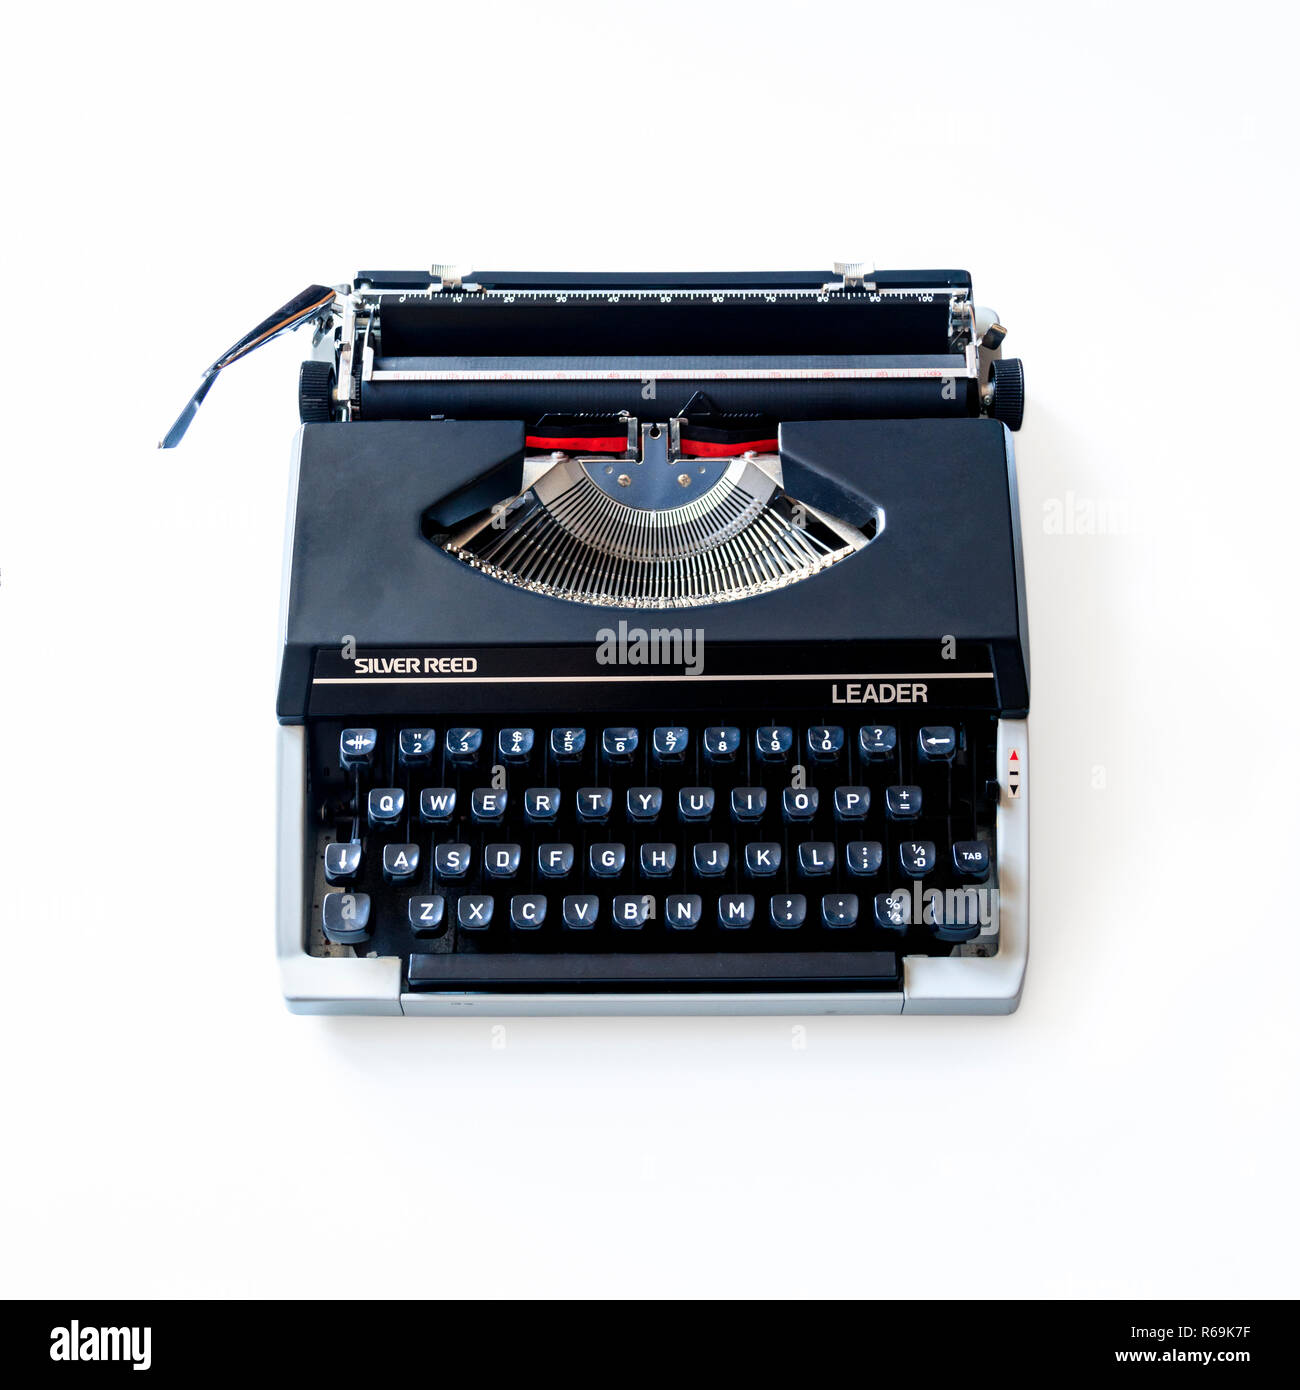 1980 Silver Reed Leader Vintage Manual Typewriter on a white background - Stock Image